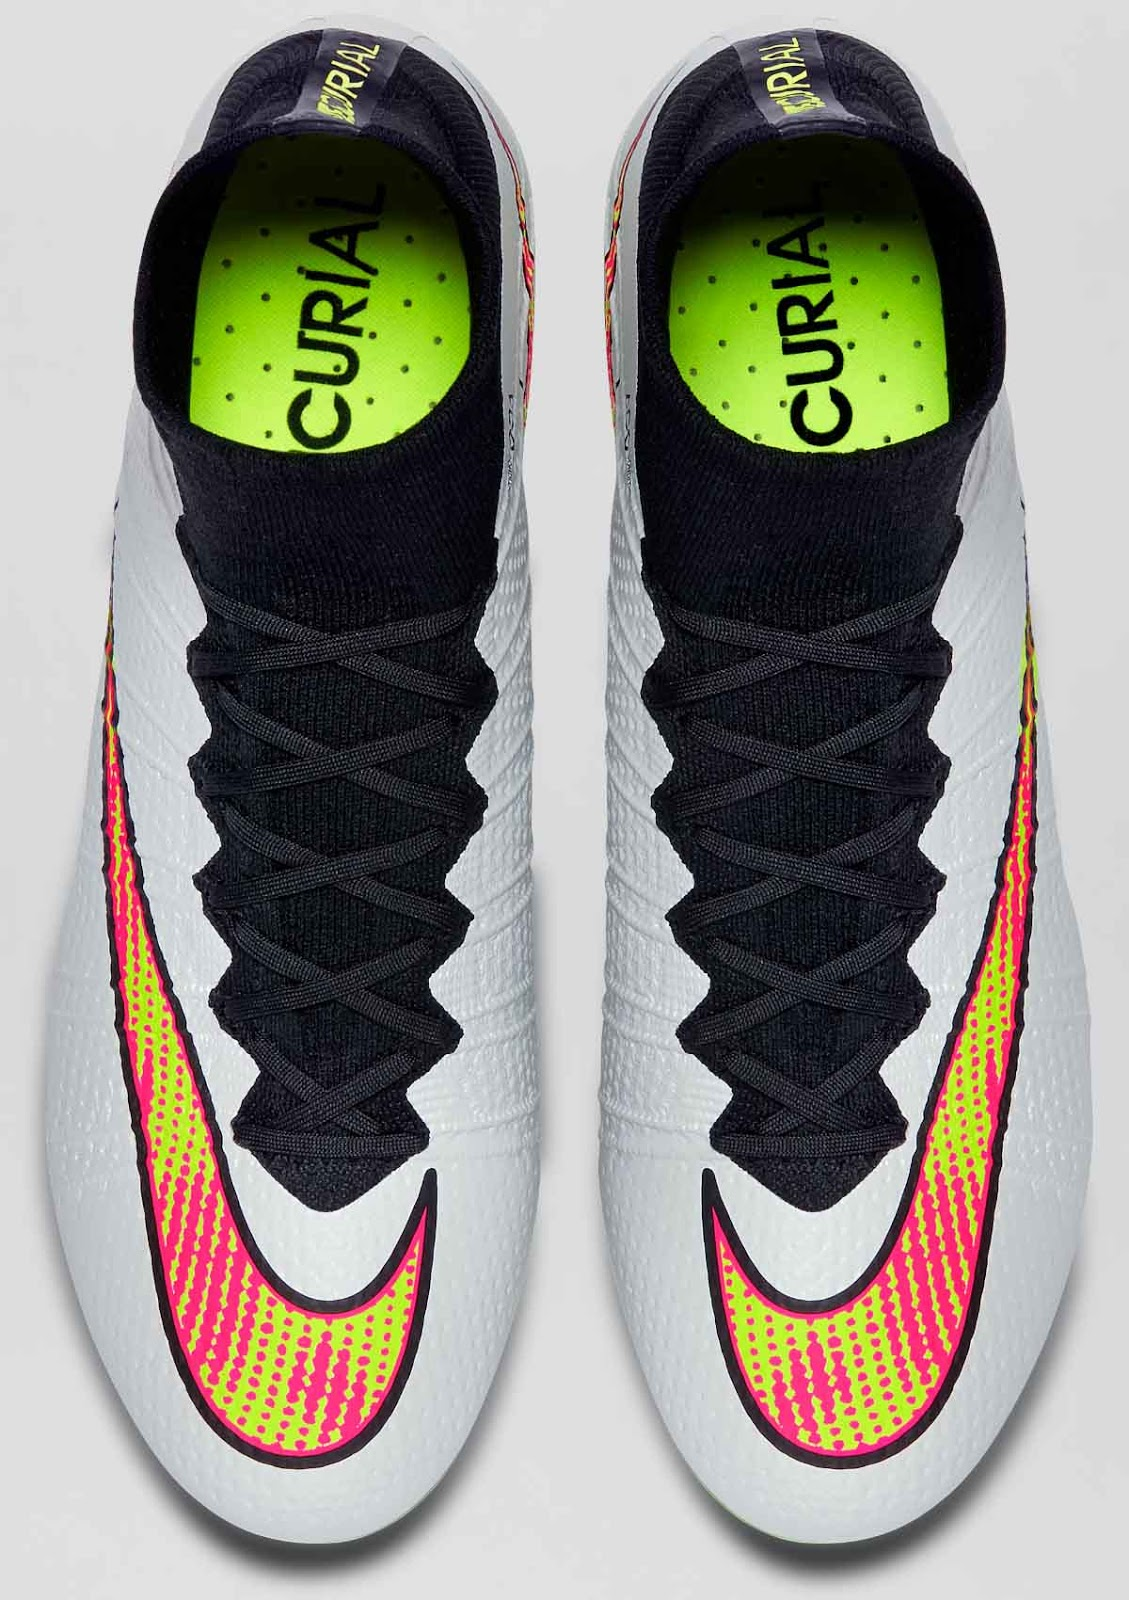 brand new 7a8fe 1c5d7 discount nike mercurial superfly fg white volt black hyper ...